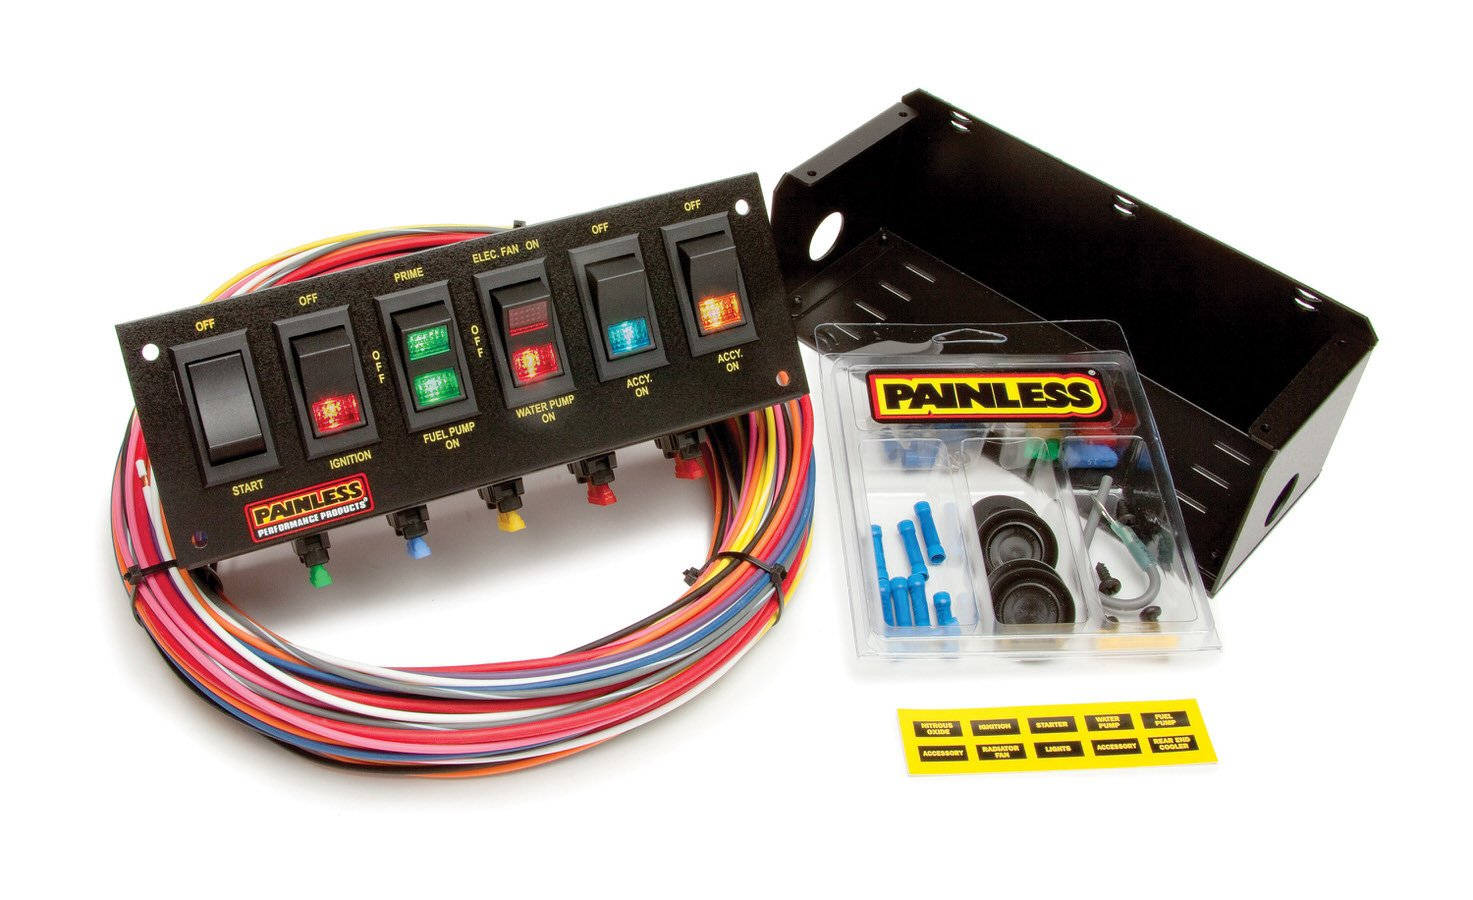 Painless Wiring 6 Switch Panel W/Harness